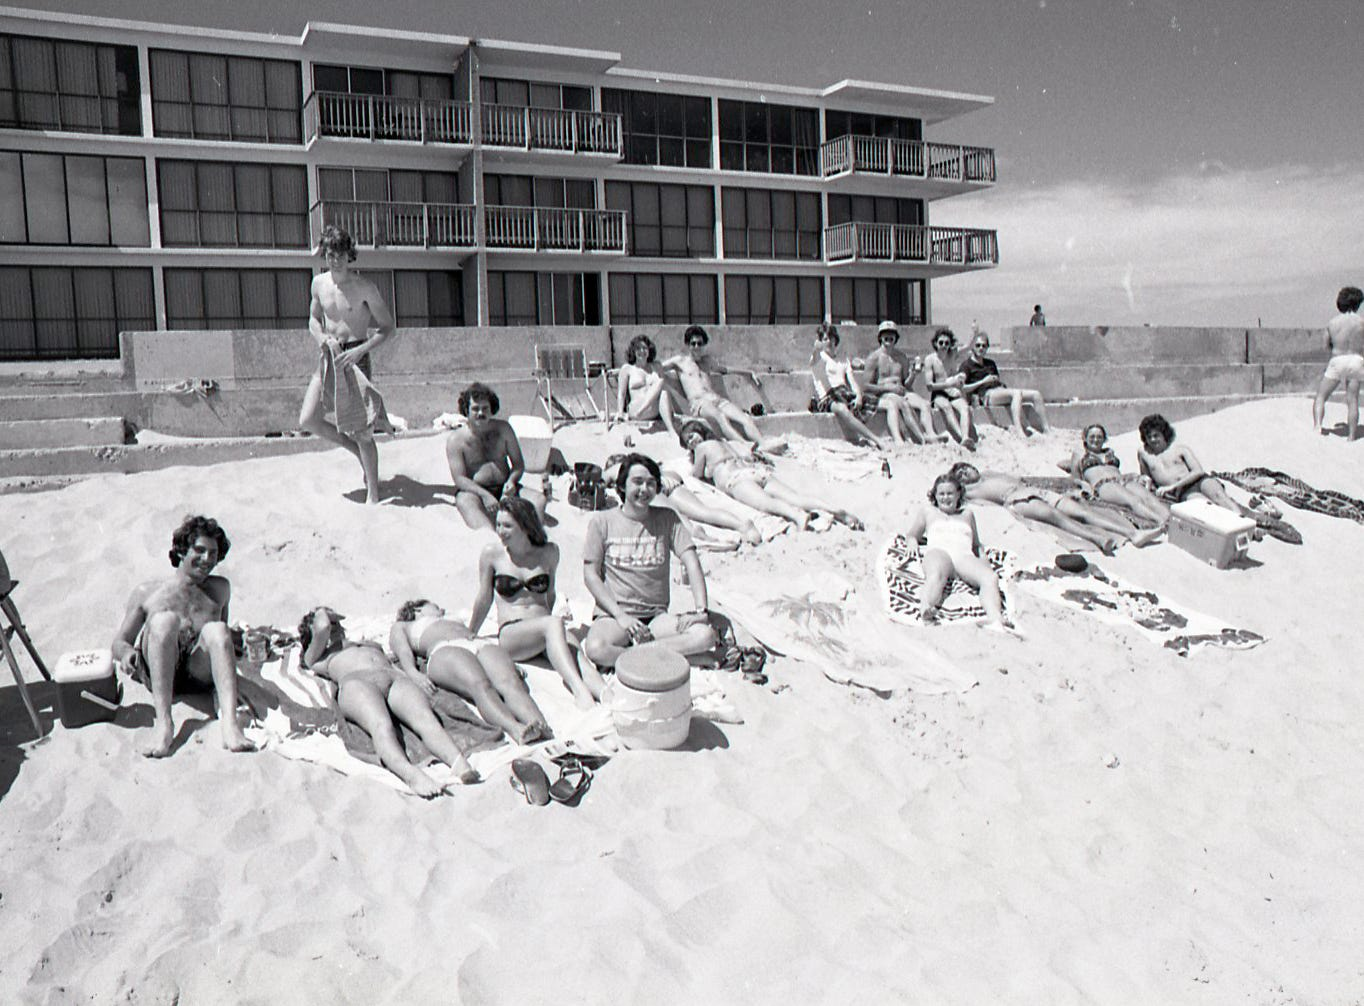 People enjoy the beach in front of the Padre Island seawall during spring break on March 18, 1978.